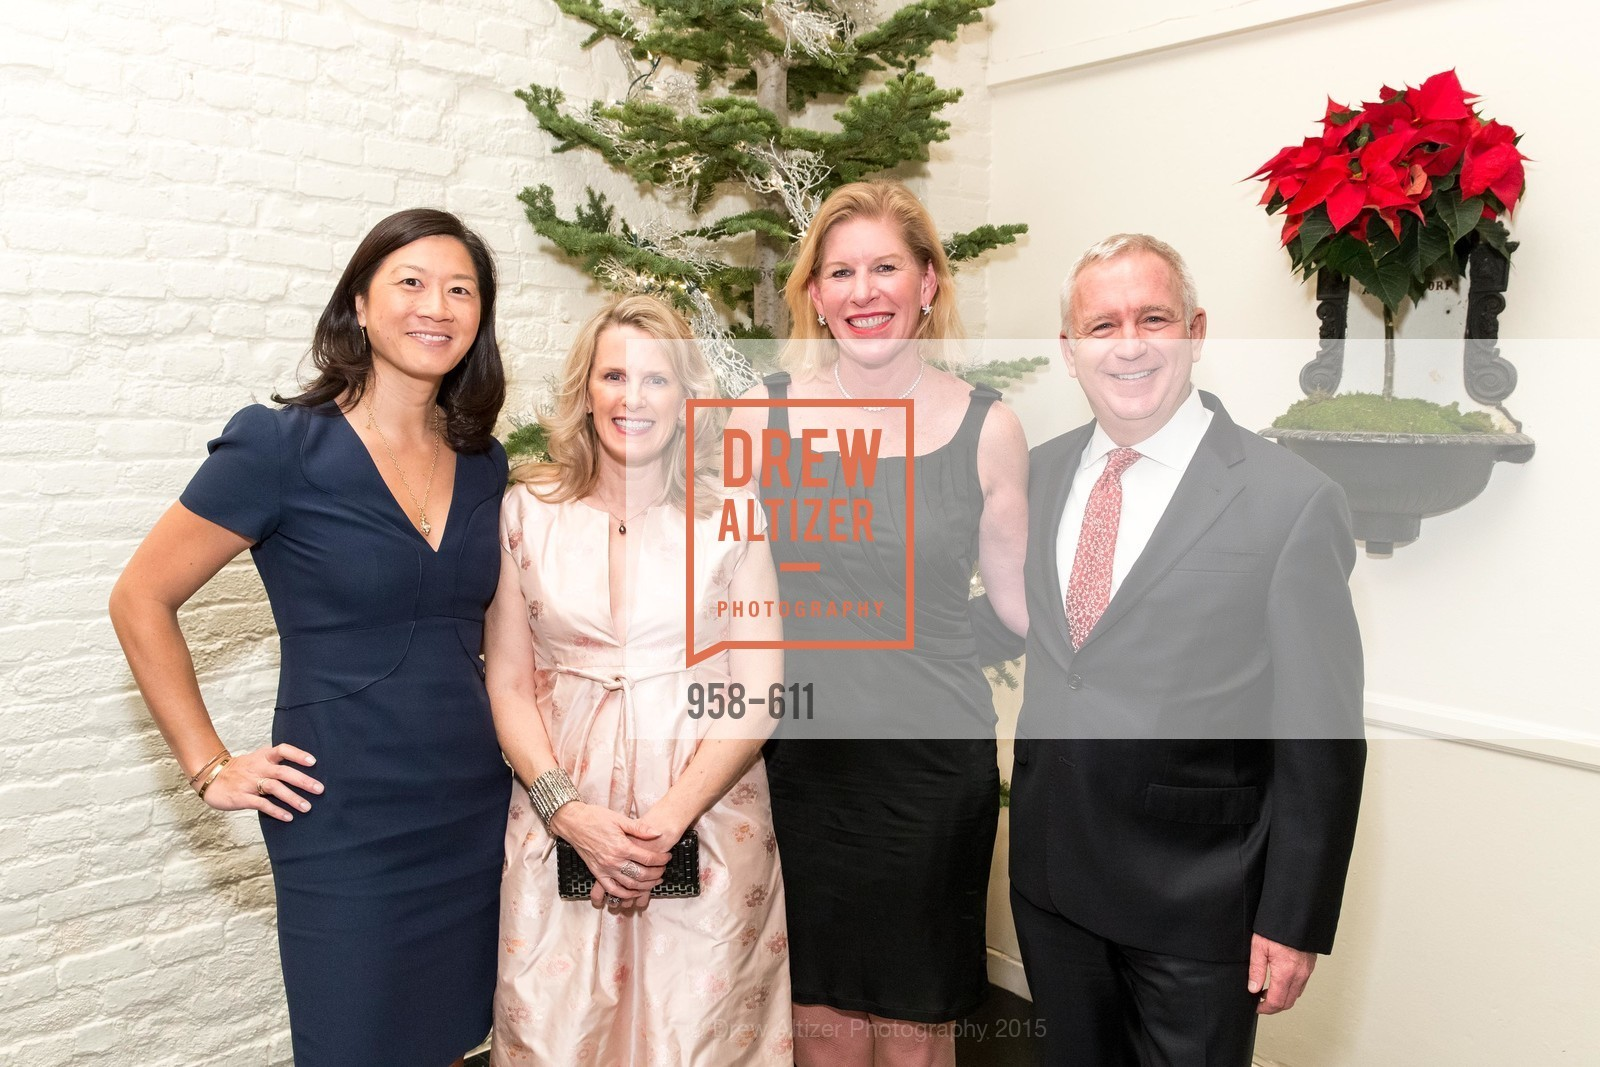 Christine Leong Connors, Marie Hurabiell, Jennifer Brandenburg, Glenn McCoy, San Francisco Ballet Auxiliary's Gala Launch party hosted by La Perla., VILLA TAVERA. 27 HOTALING PLACE, December 1st, 2015,Drew Altizer, Drew Altizer Photography, full-service agency, private events, San Francisco photographer, photographer california